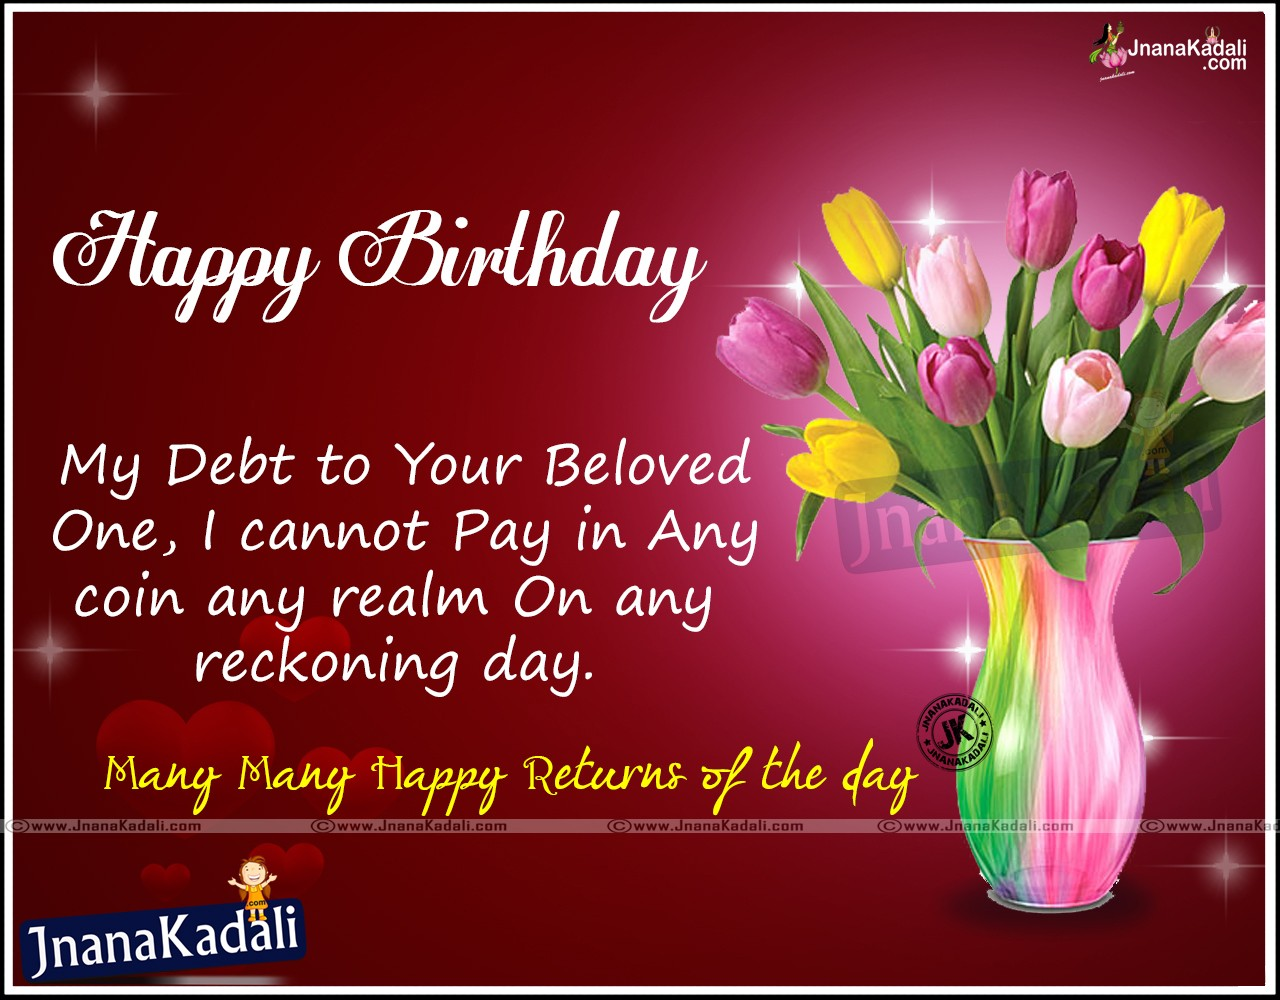 happy birthday wishes for friend message in english ; happy-birthday-best-friend-quote-lovely-birthday-message-in-english-language-happy-birthday-different-of-happy-birthday-best-friend-quote